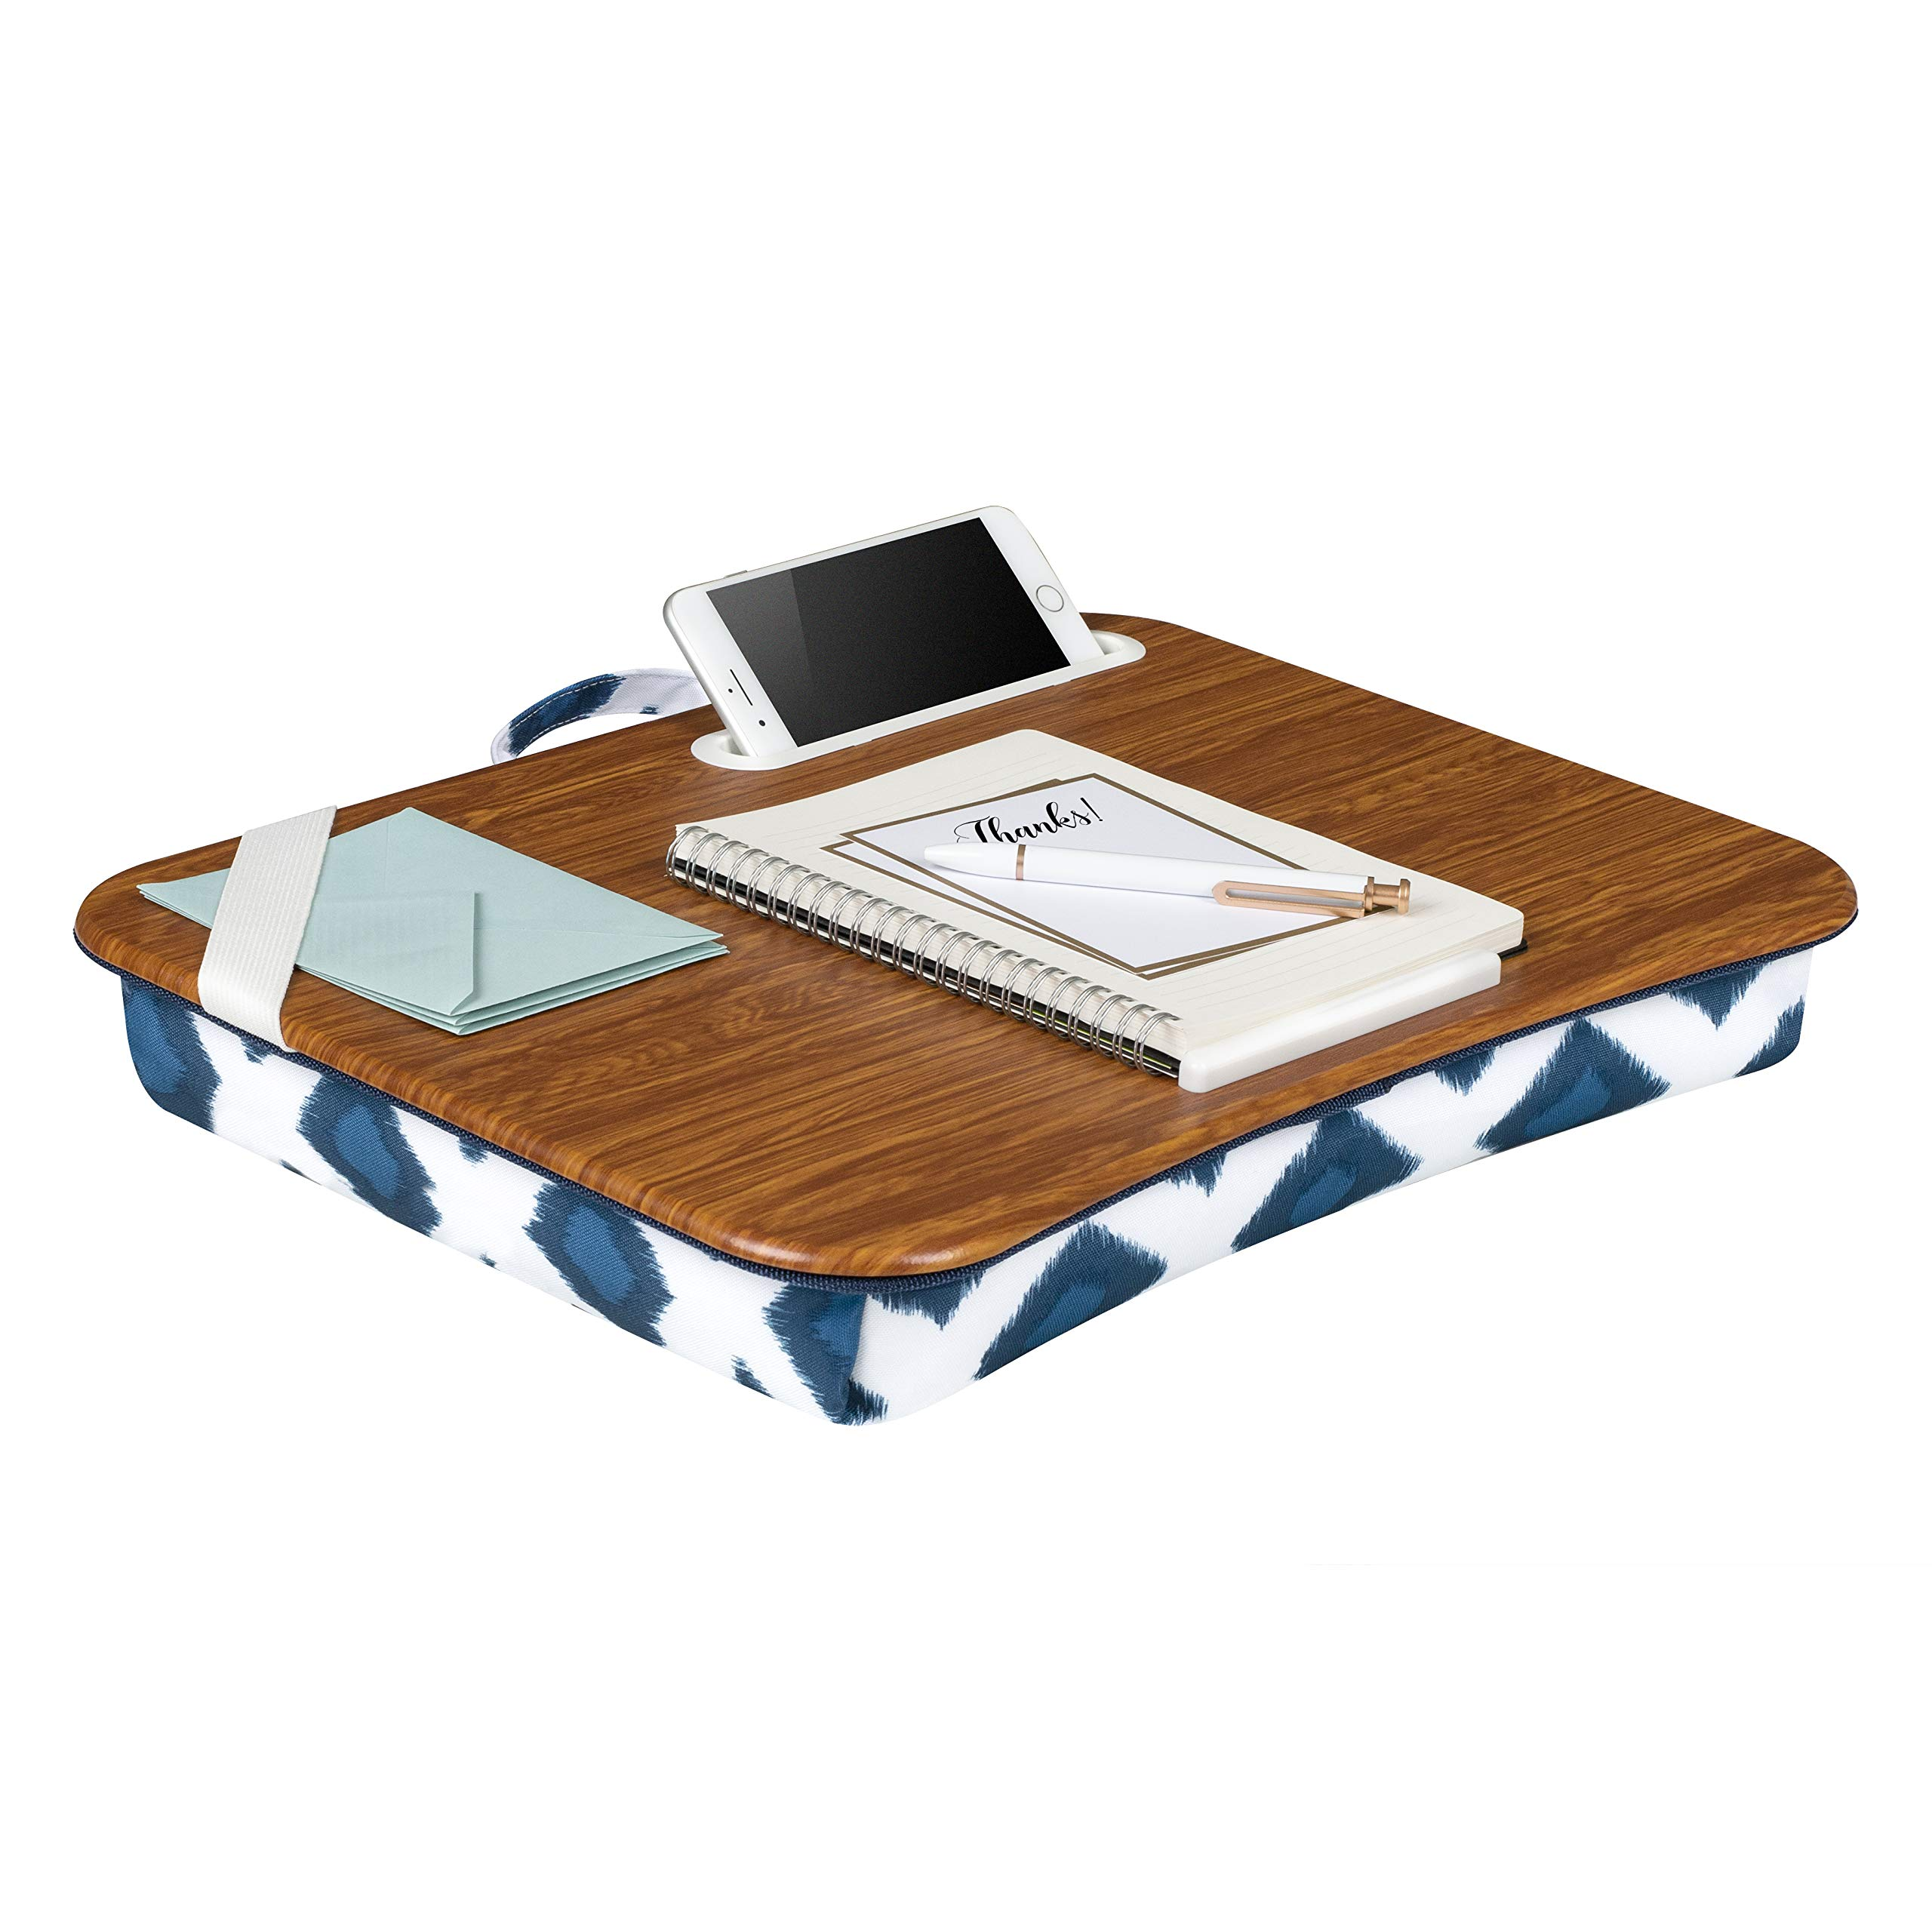 LapGear Designer Lap Desk with Phone Holder - Navy Ikat - Fits up to 15.6 Inch laptops - Style No.45423